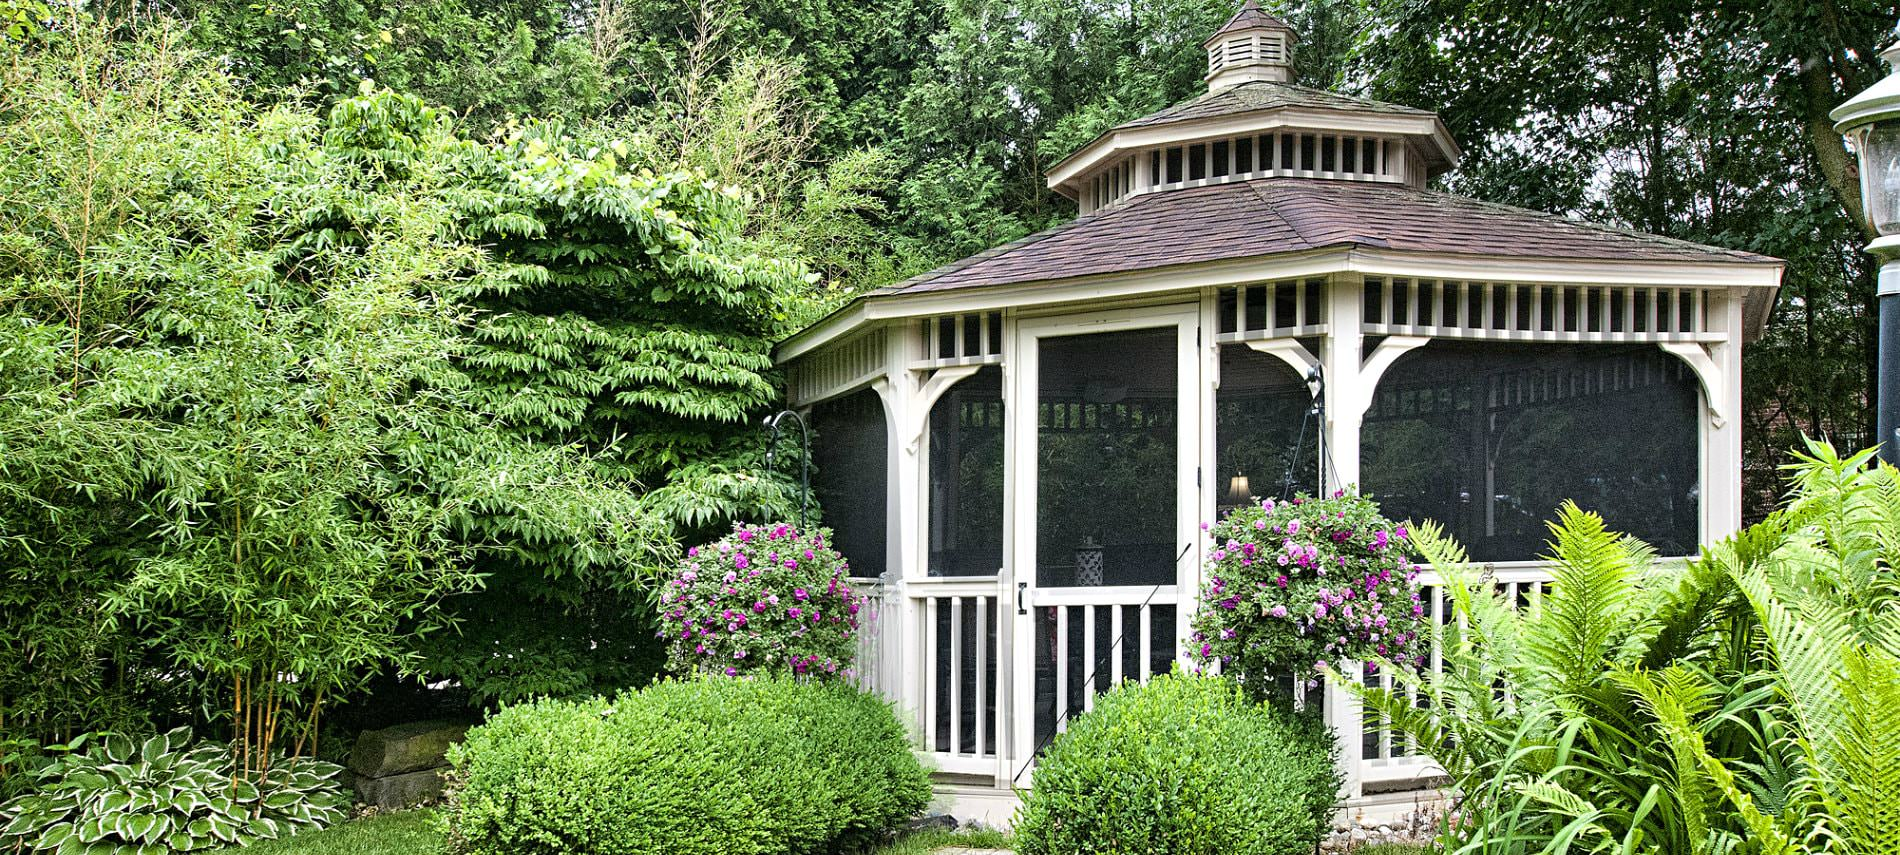 White screened-in gazebo with shingle roof and cupola surrounded by lush green trees and shrubs